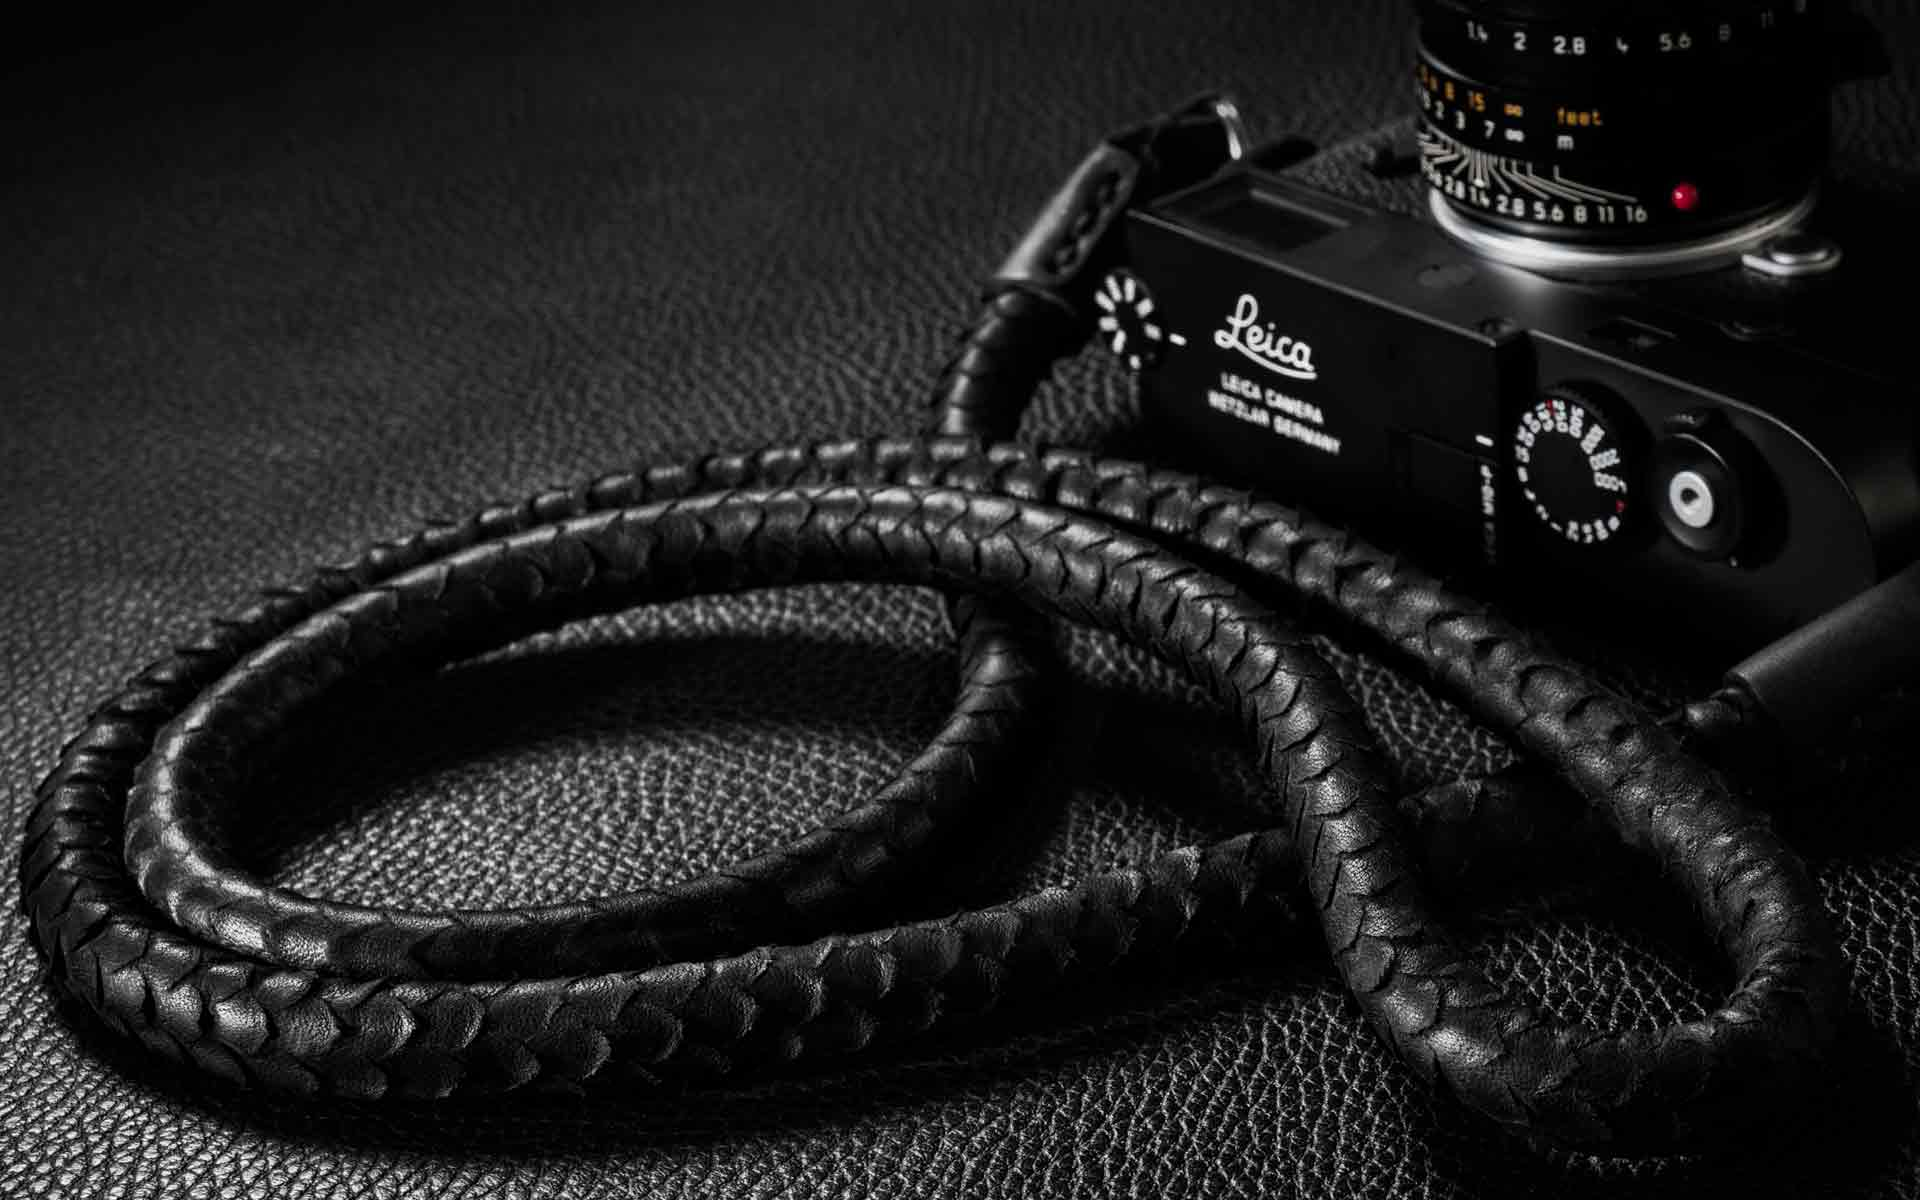 leather camera strap, handmade leather camera strap, leica camera strap, handmade camera strap, black camera strap, mirrorless camera strap